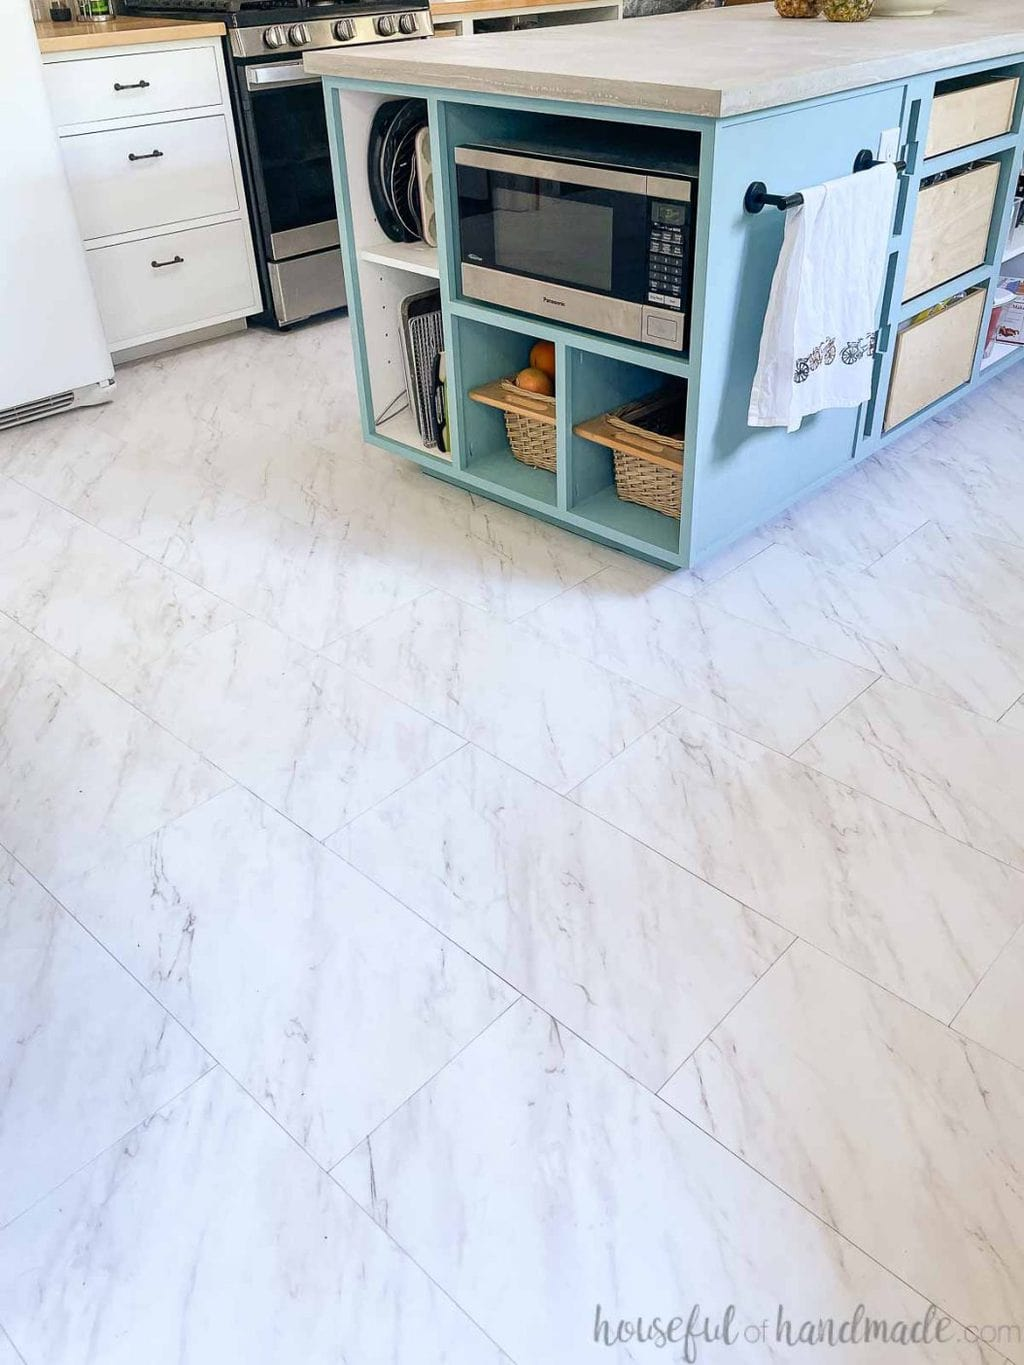 Marble look peel and stick vinyl tiles installed on the floor in a kitchen and dining room.